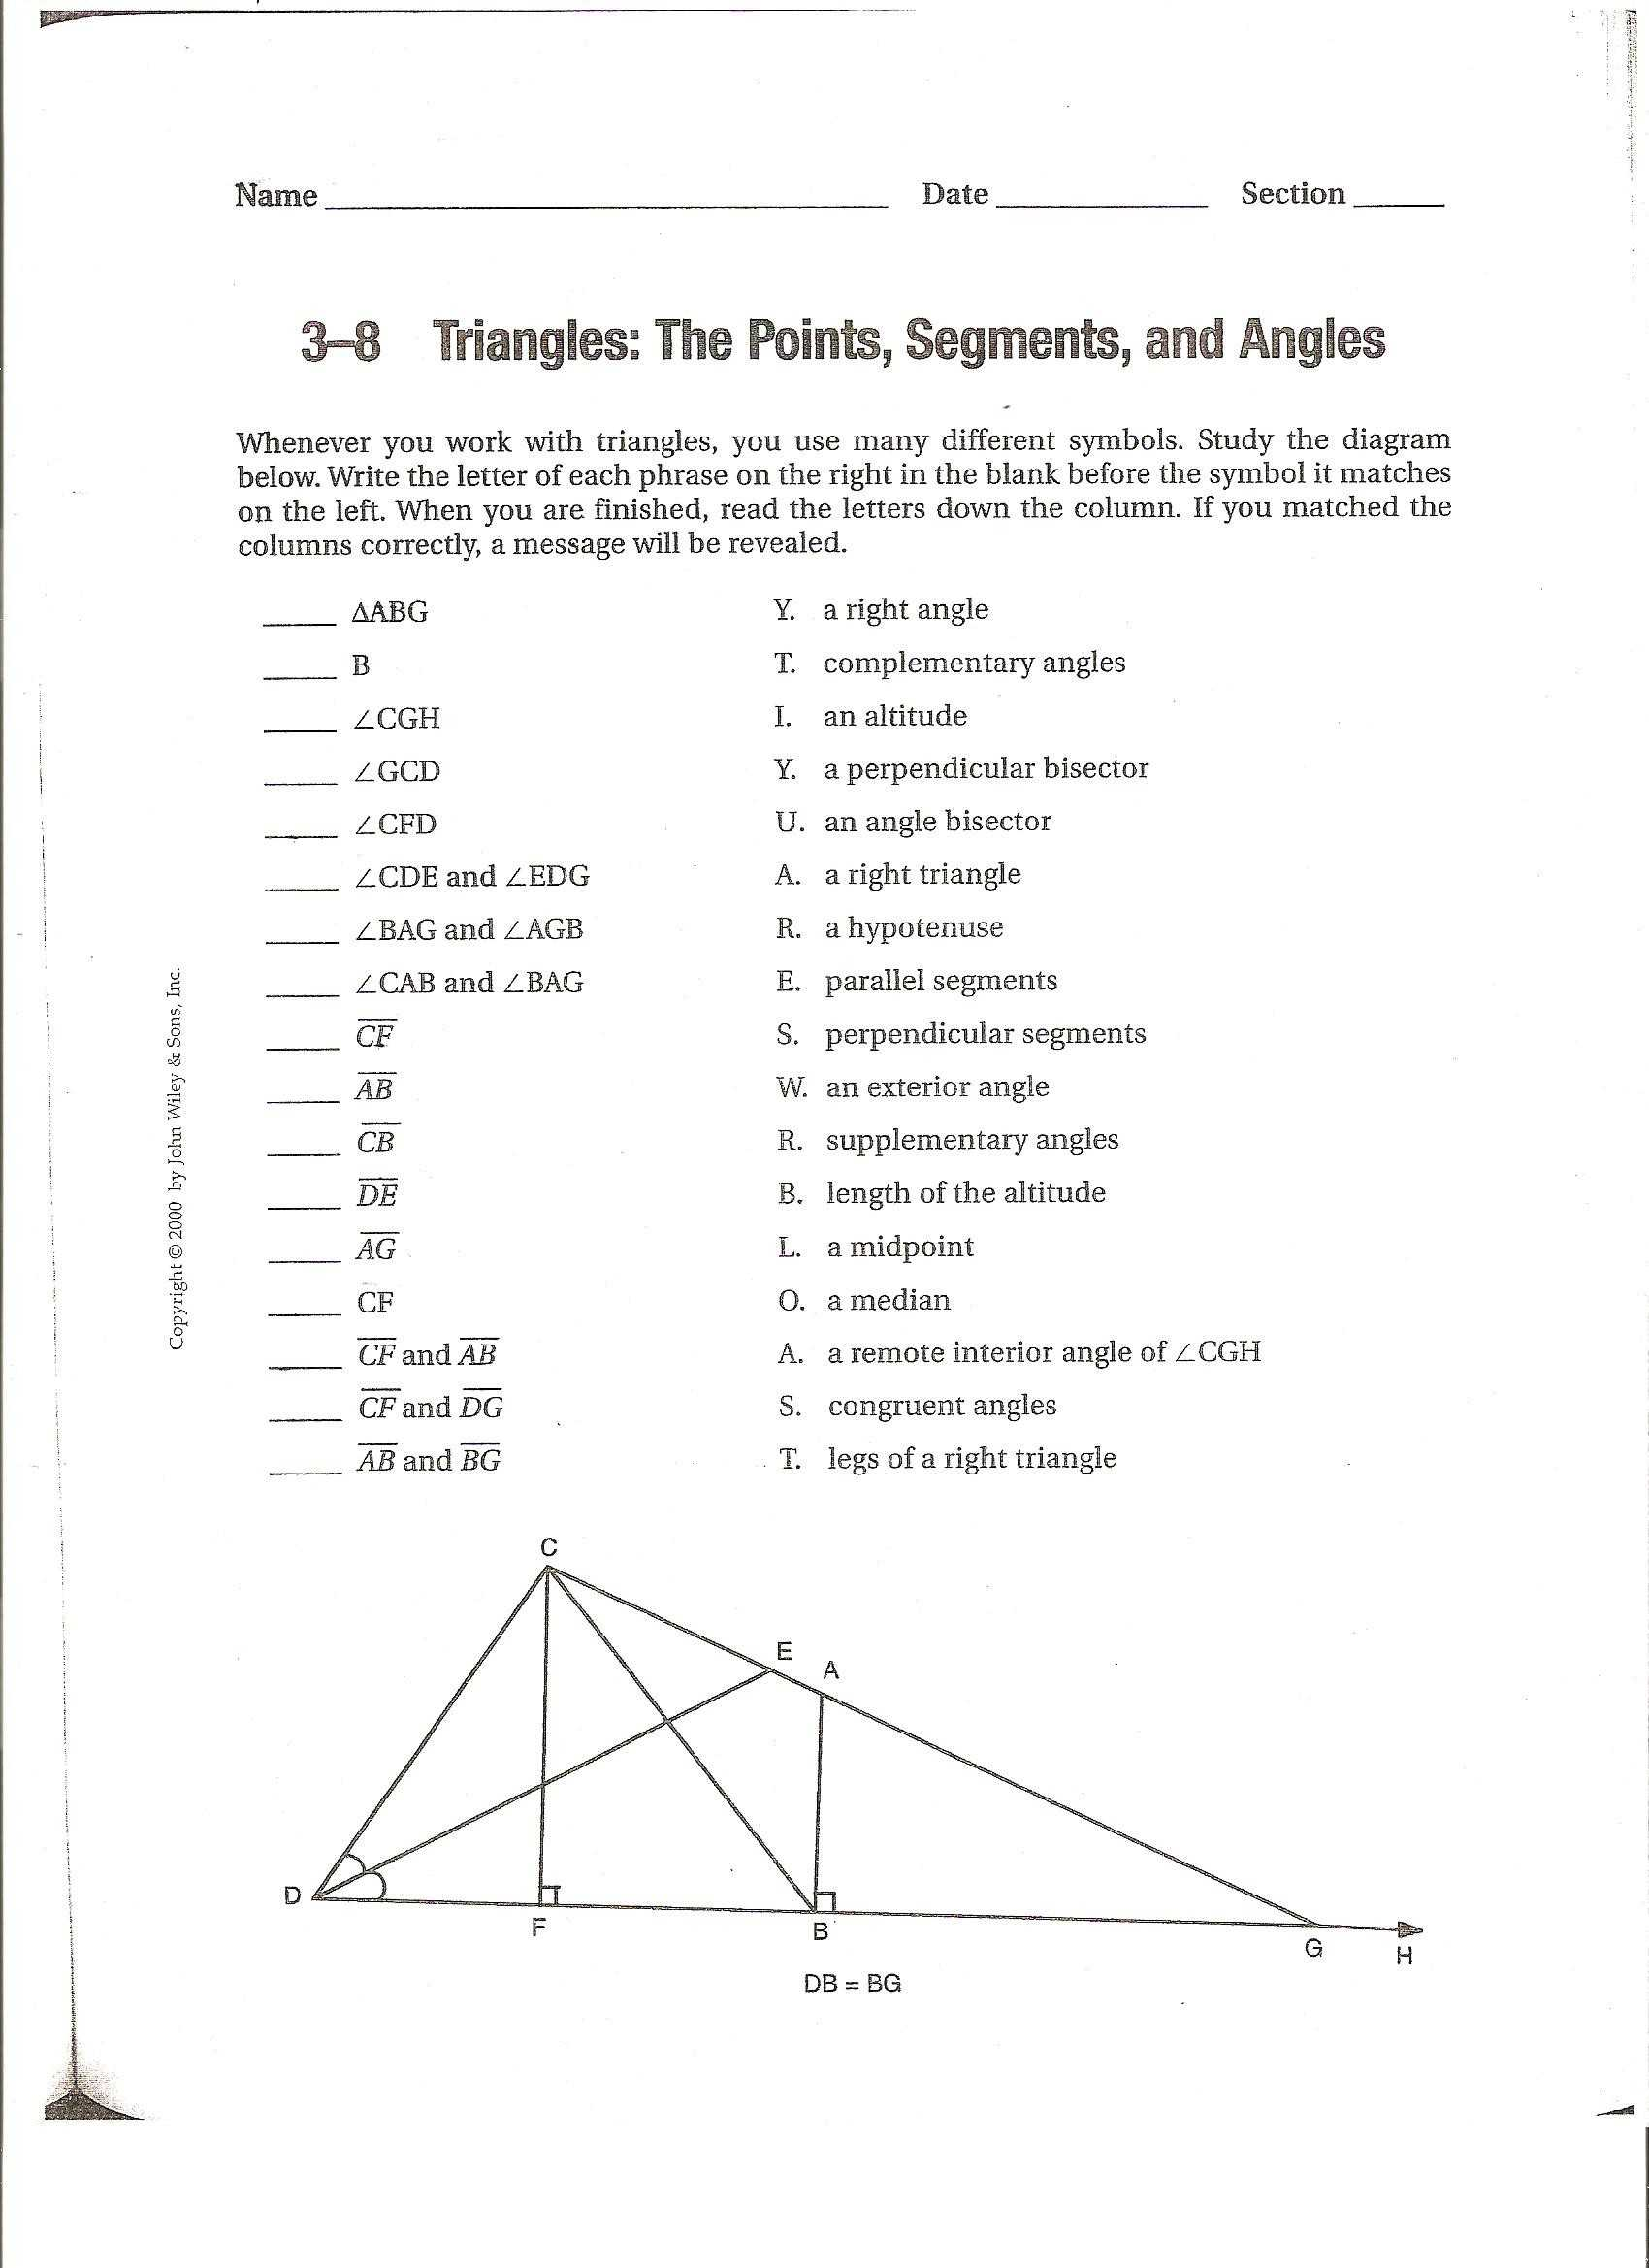 Trigonometry Finding Angles Worksheet Answers As Well As